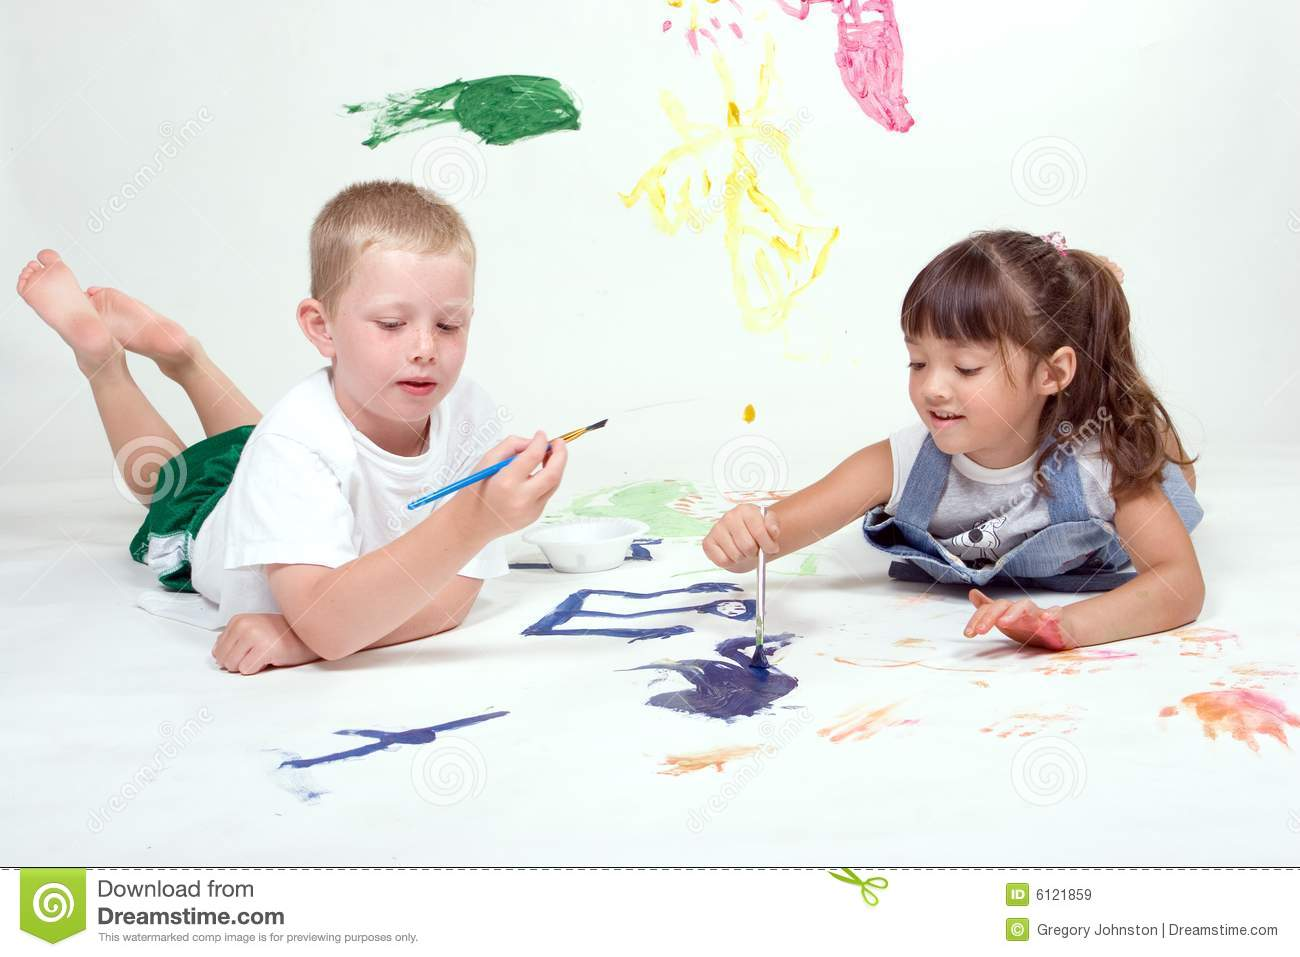 Http Www Dreamstime Com Royalty Free Stock Images Two Kids Painting Pictures Image6121859